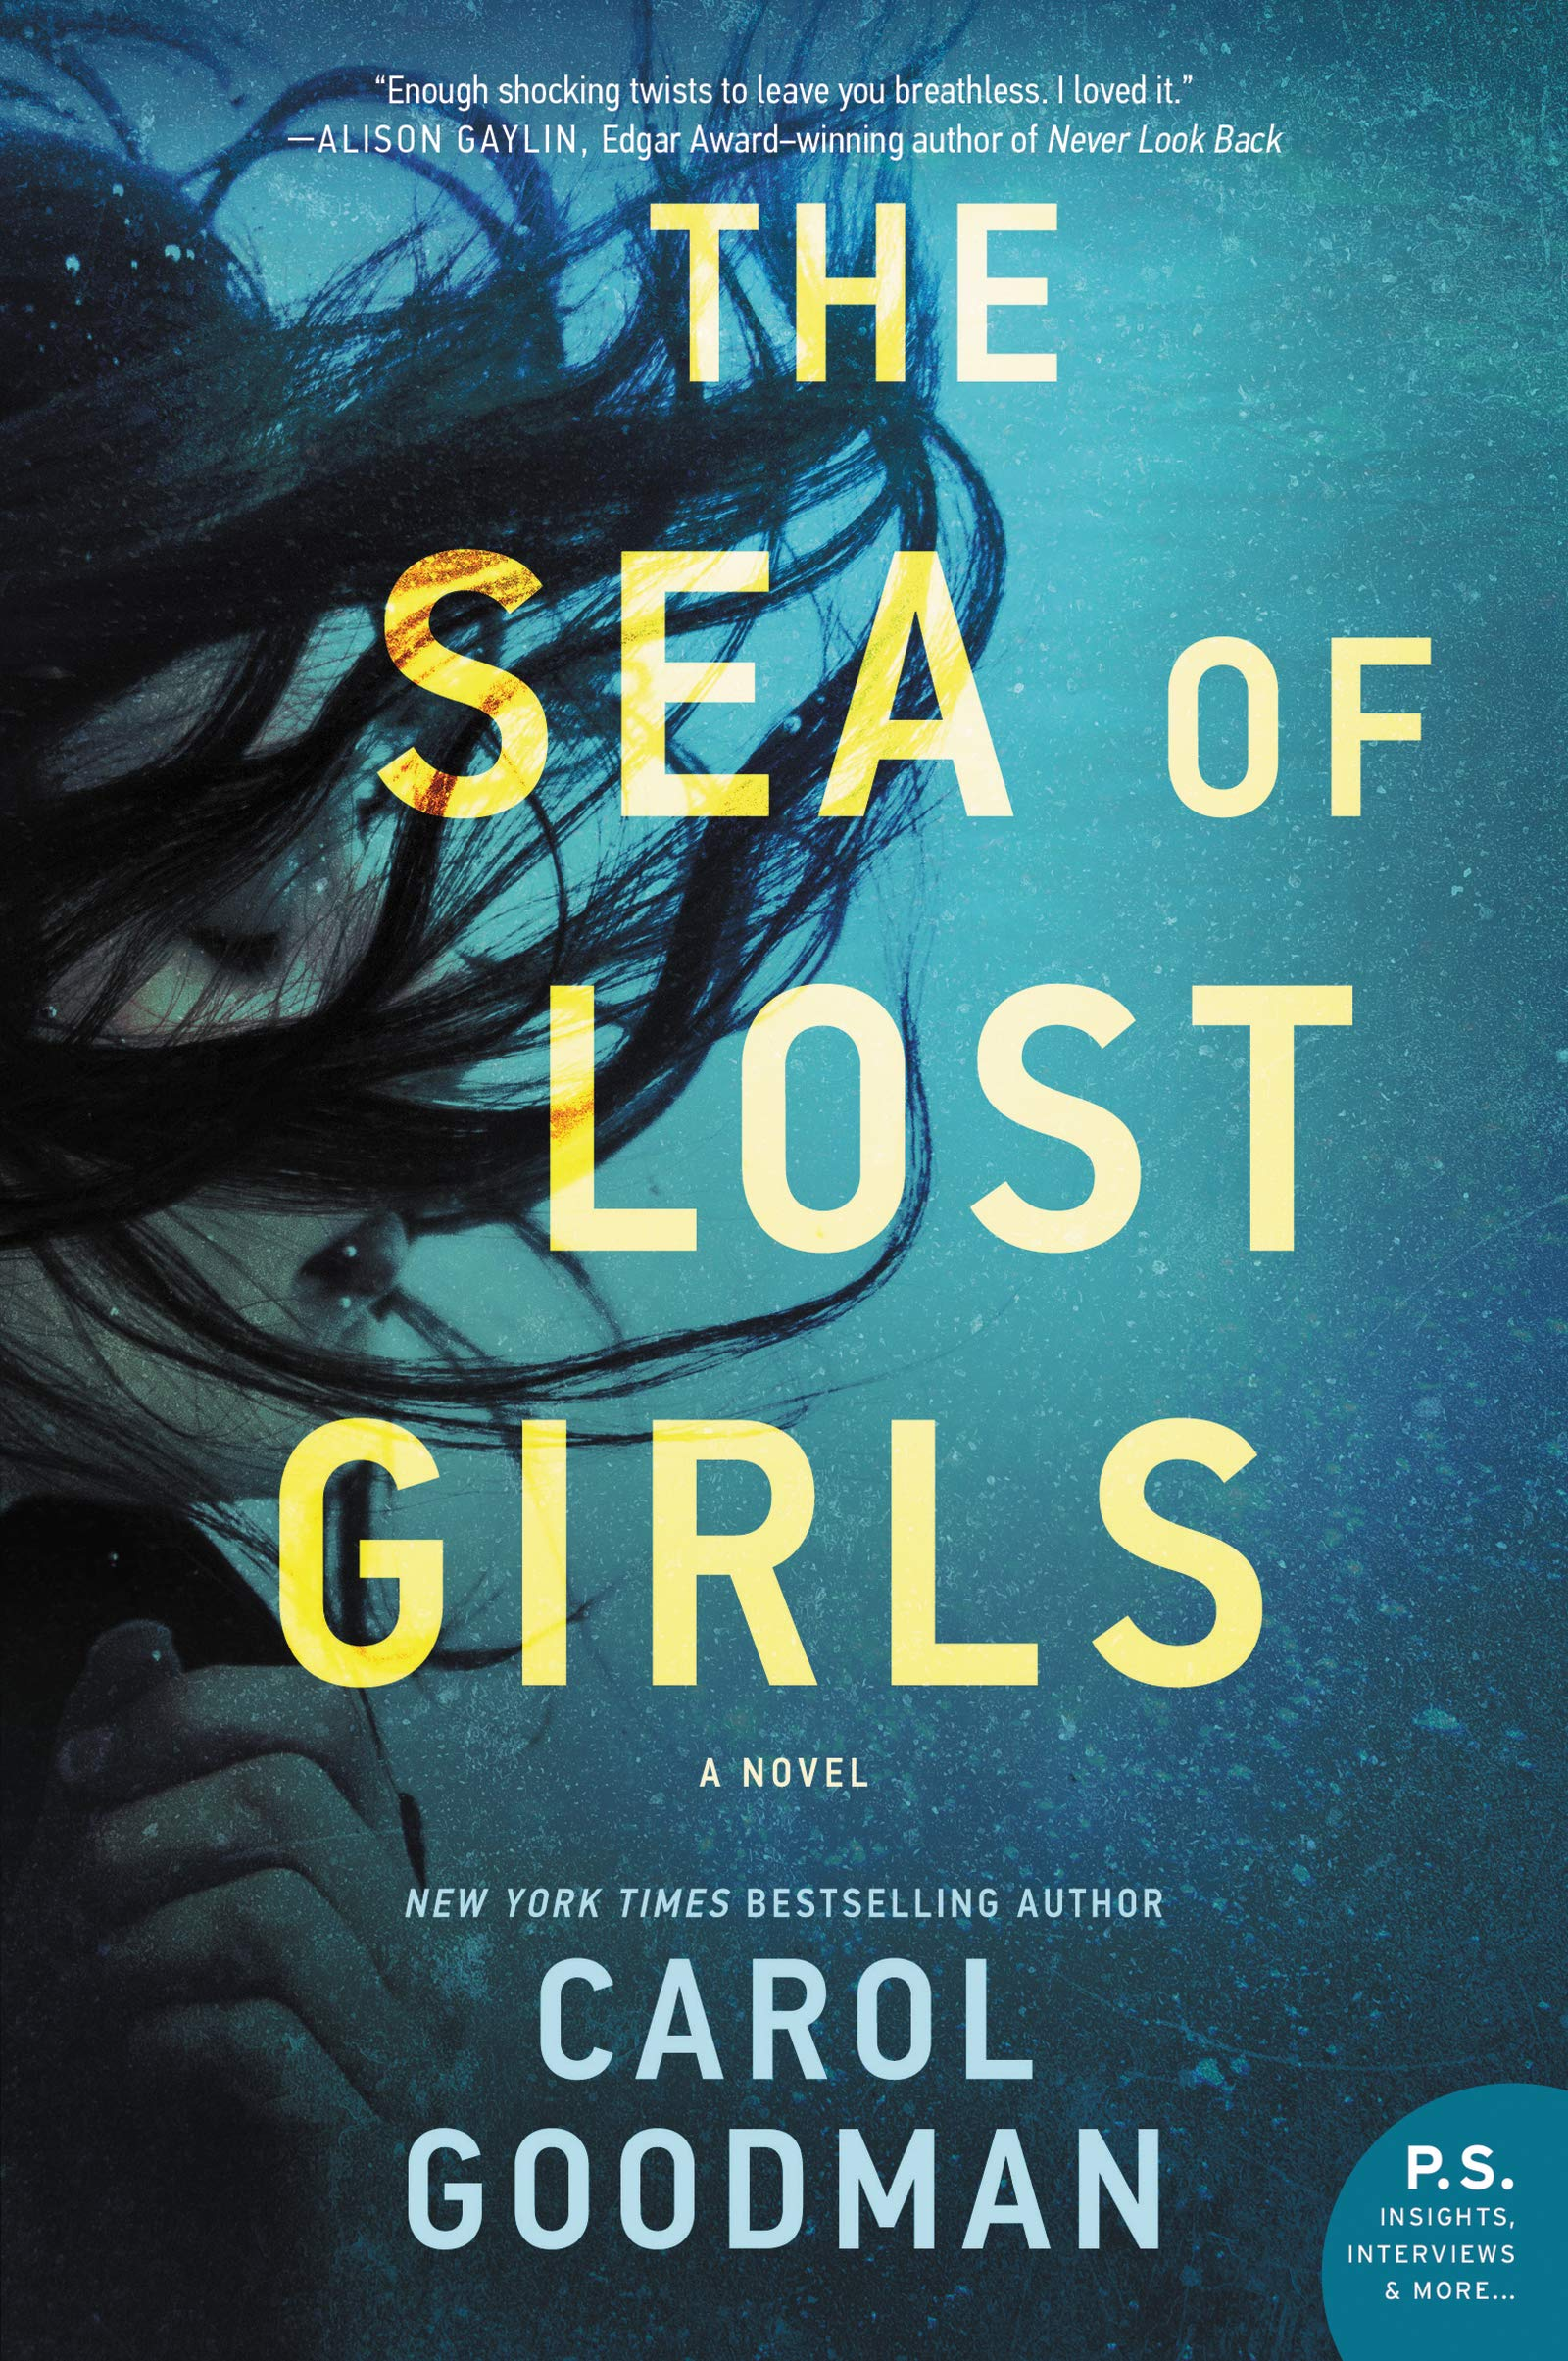 The Sea of Lost Girls